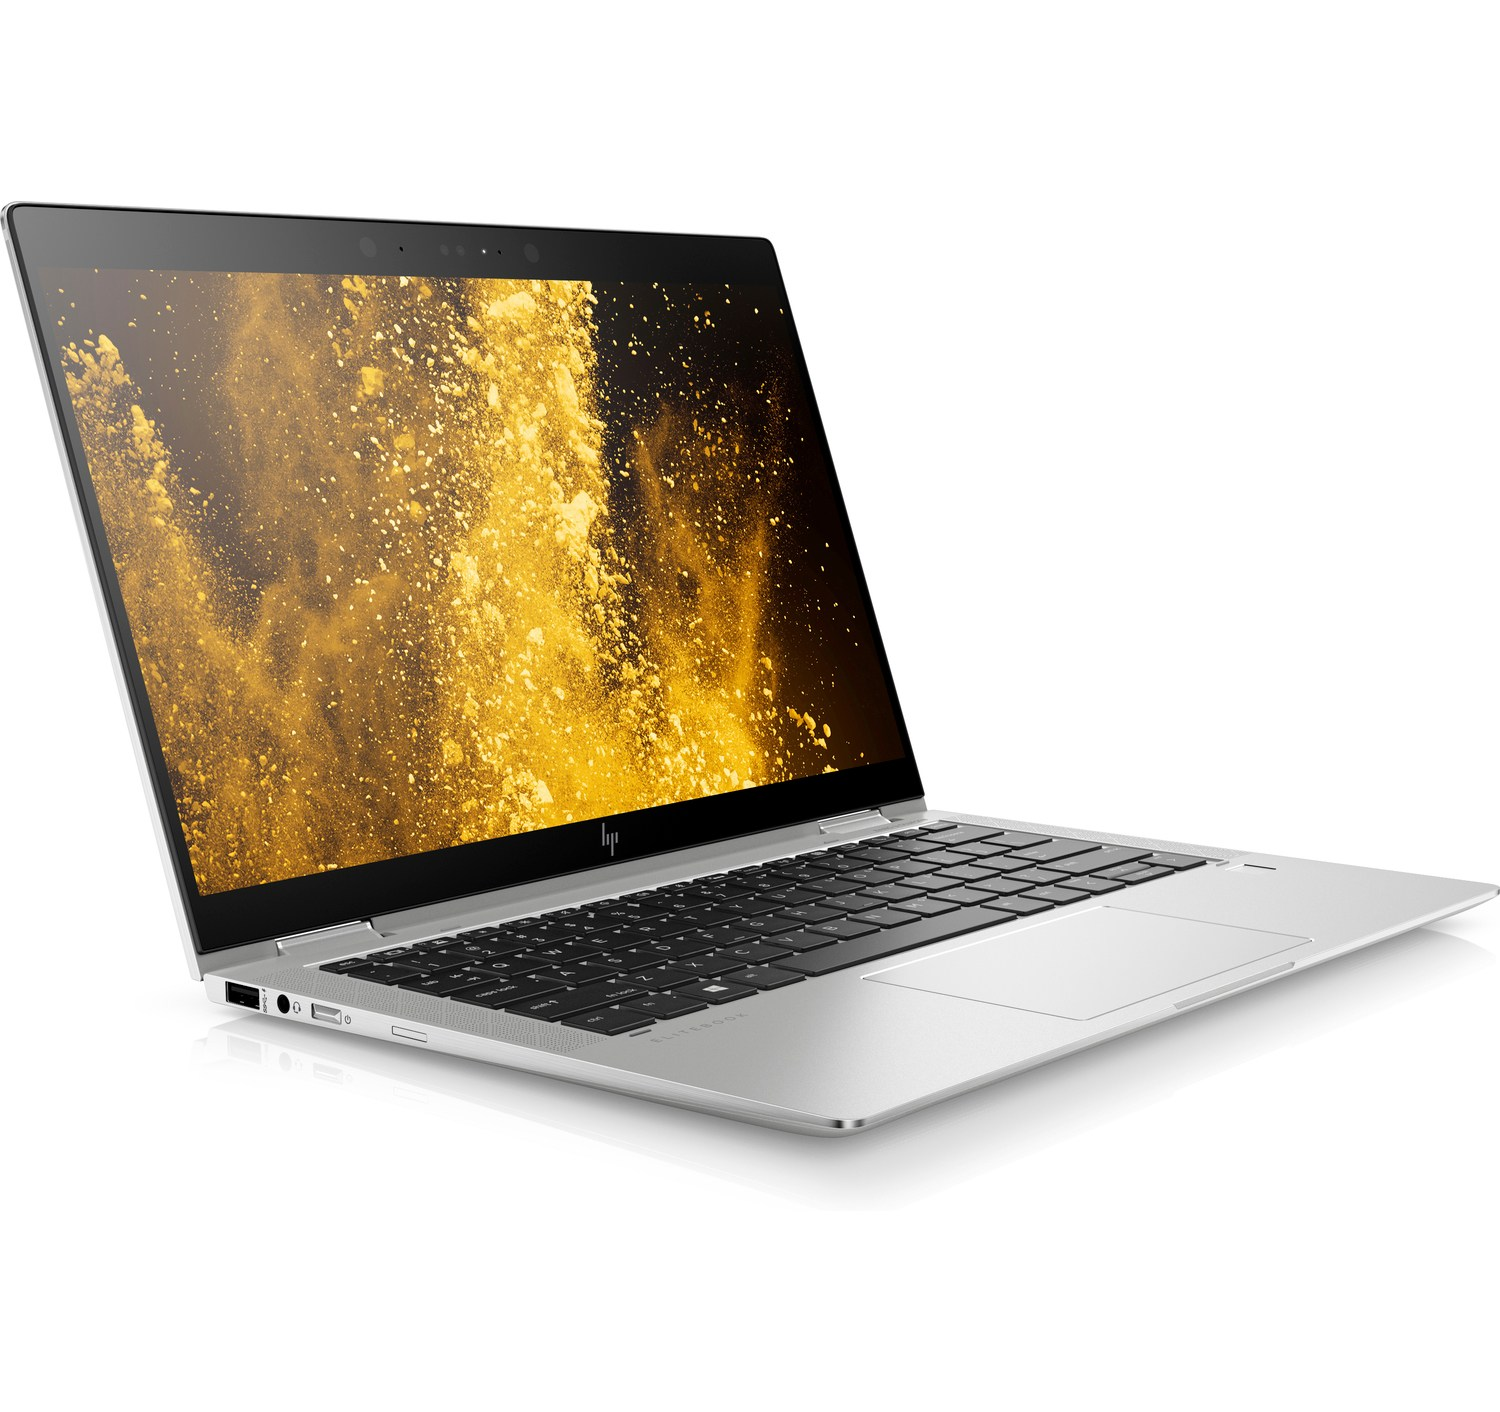 c06129692-HP-EliteBook-x360-1030-G3